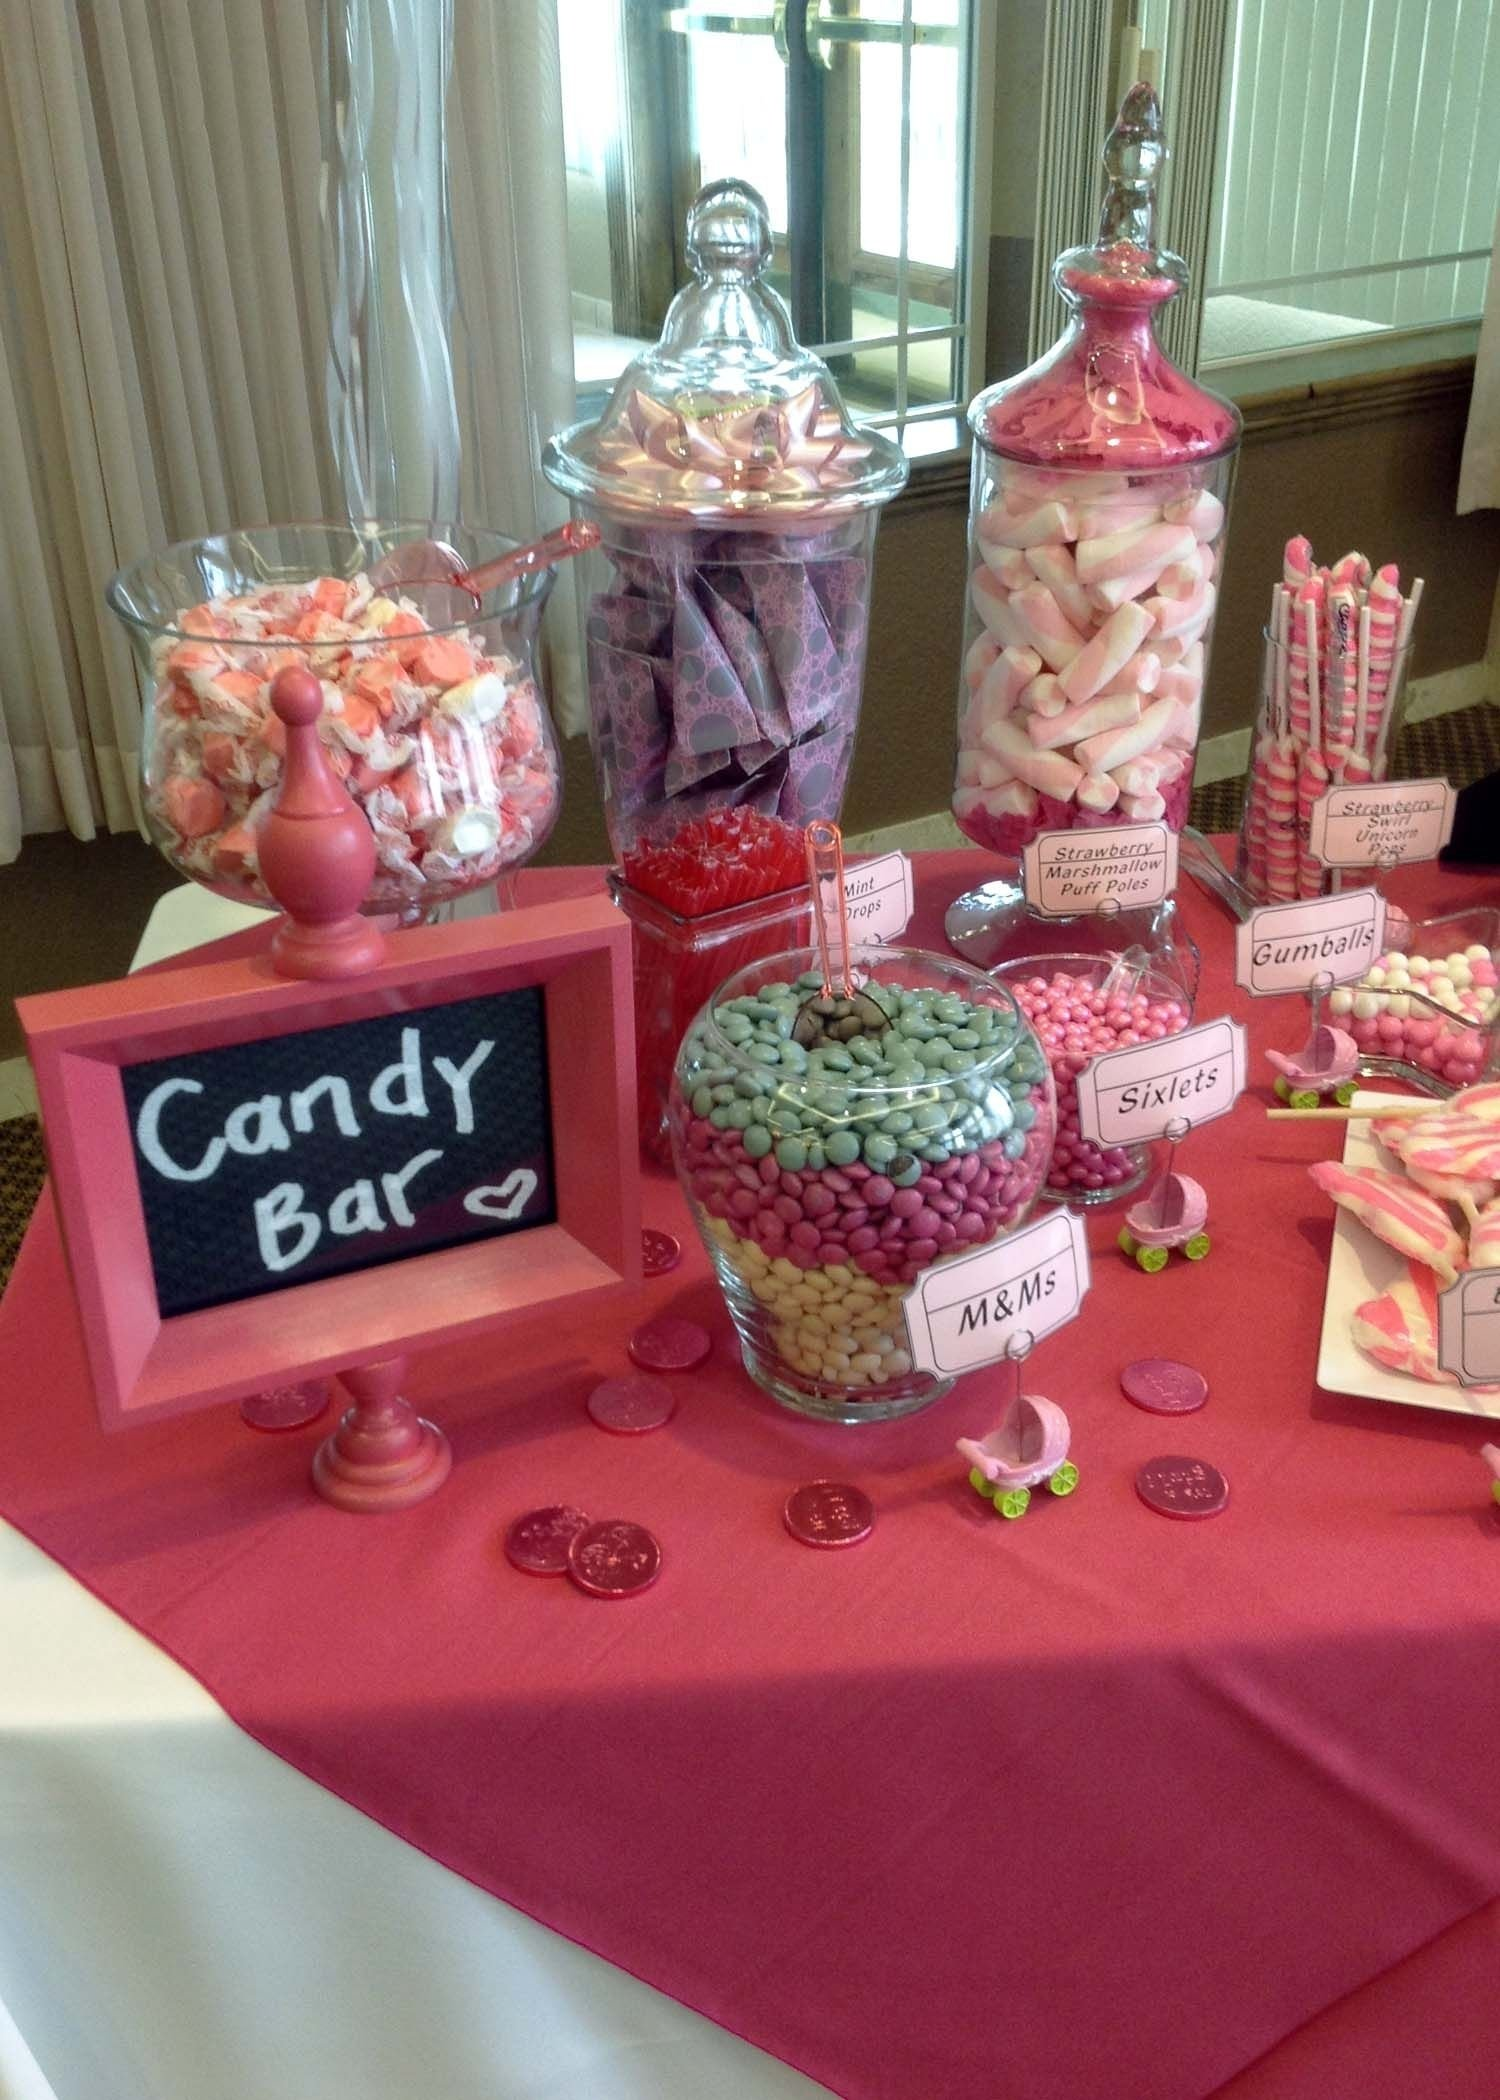 10 Elegant Baby Shower Candy Bar Ideas baby shower candy bar could find baby themed items and make up baby